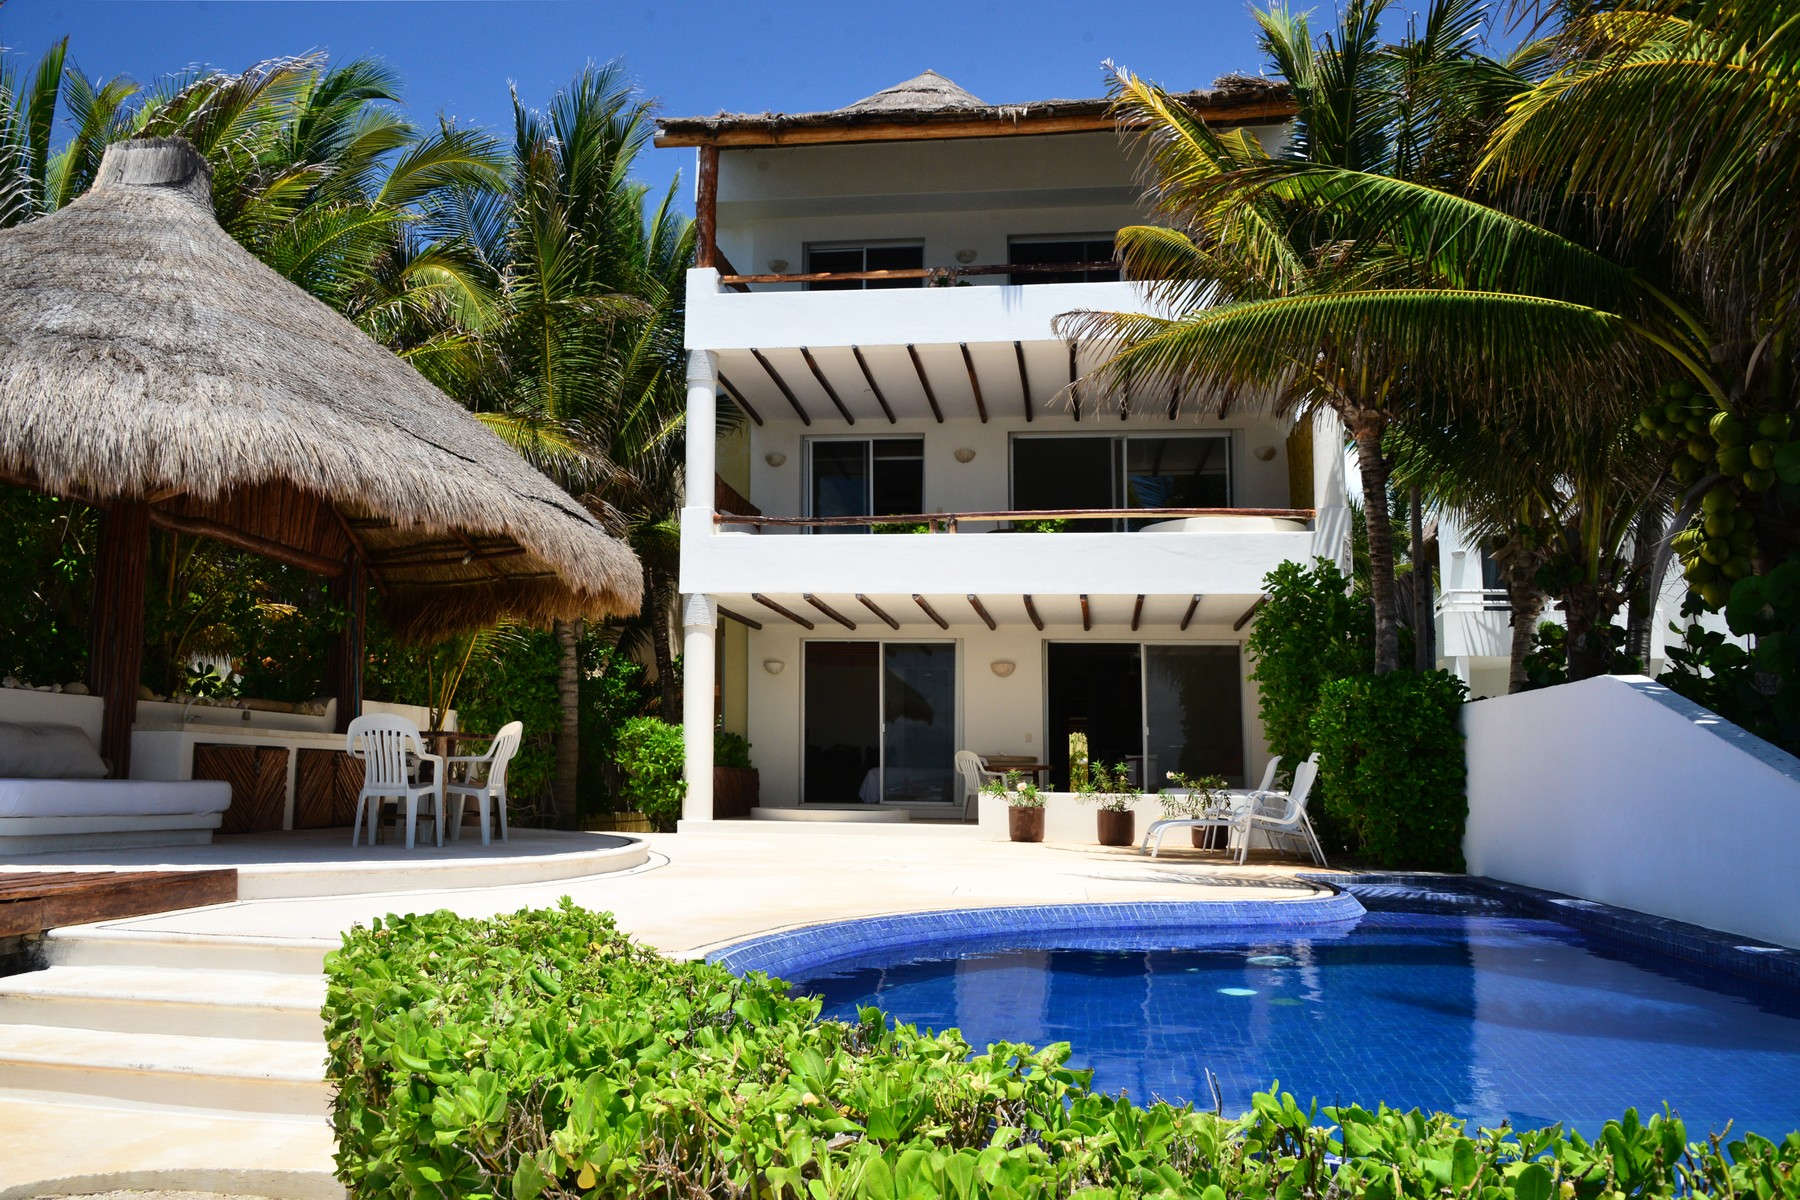 Apartment for Sale at SEAFRONT PARADISE UNIT #101 Seafront Paradise – Unit #101 Predio Maria Irene, Supermzna 12, Mzna 21 13 Puerto Morelos, Quintana Roo, 77930 Mexico